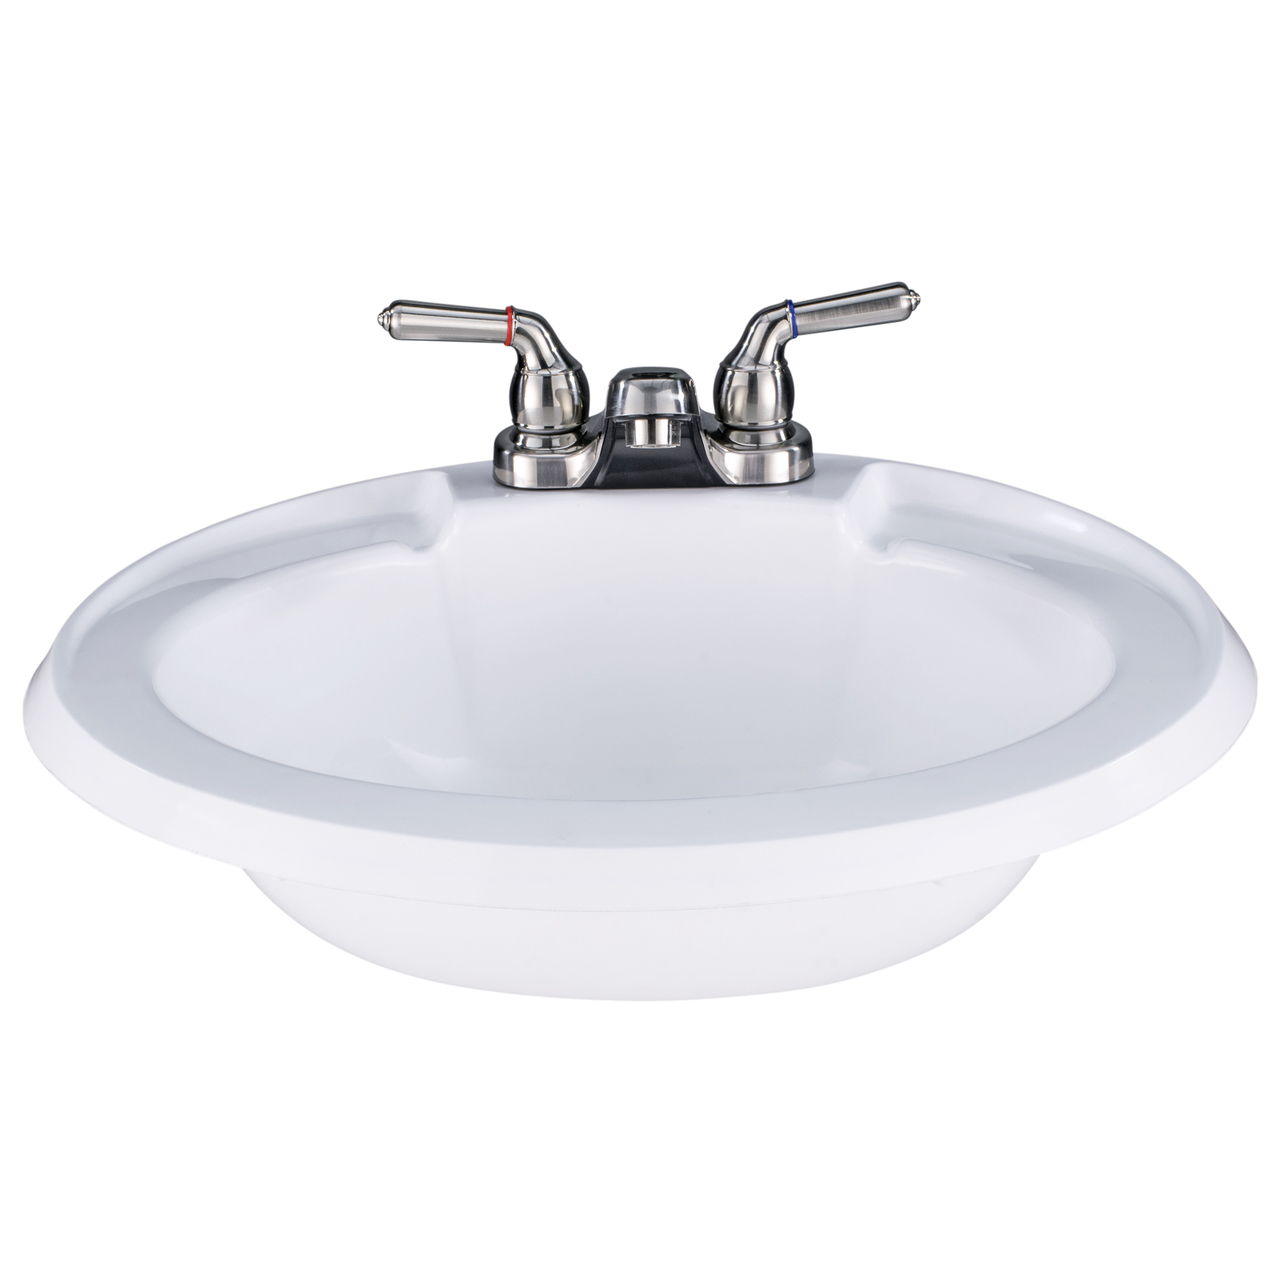 Sinks: White Oval RV Bathroom Sink w/ Brushed Nickel Faucet Combo